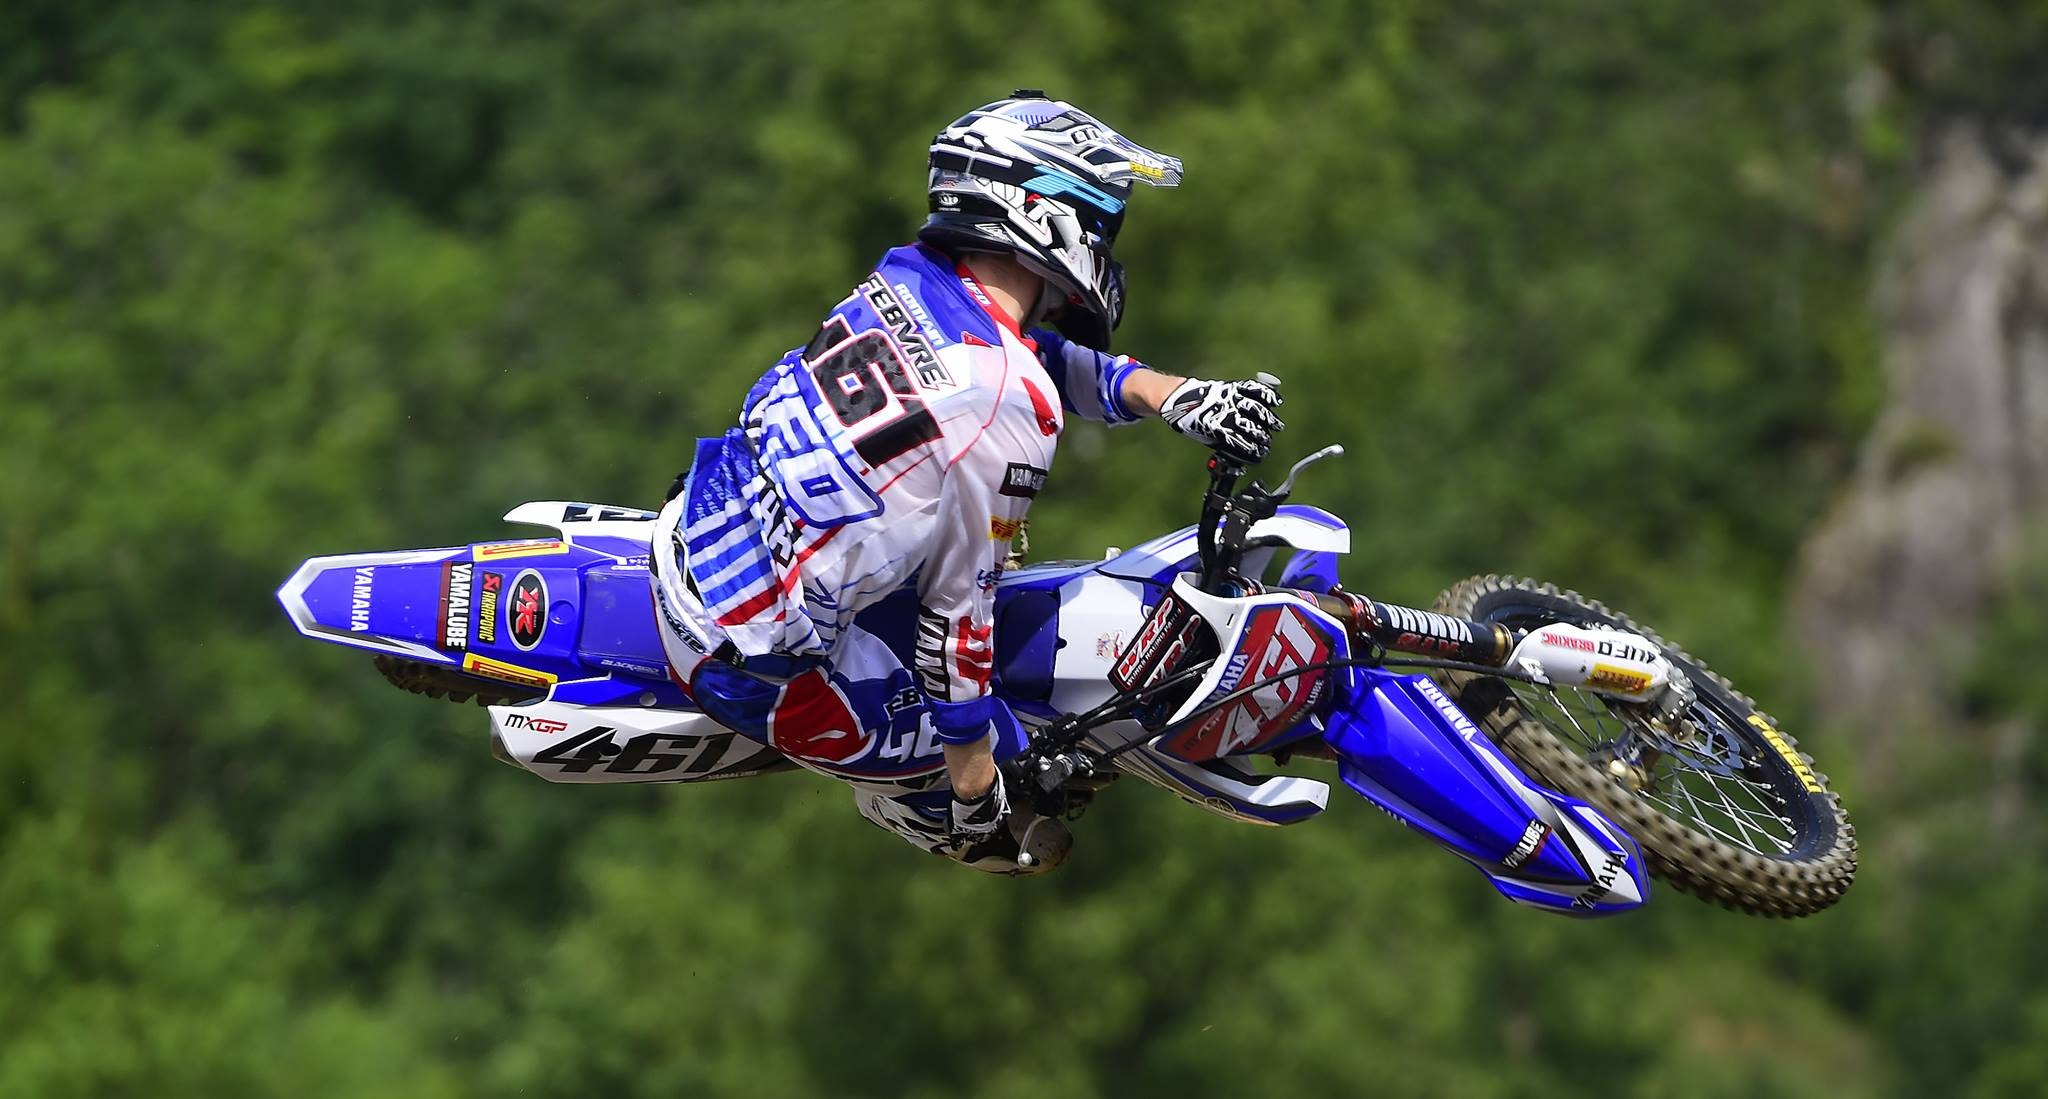 Romain Febvre Opens his 2016 Campaign with a Win